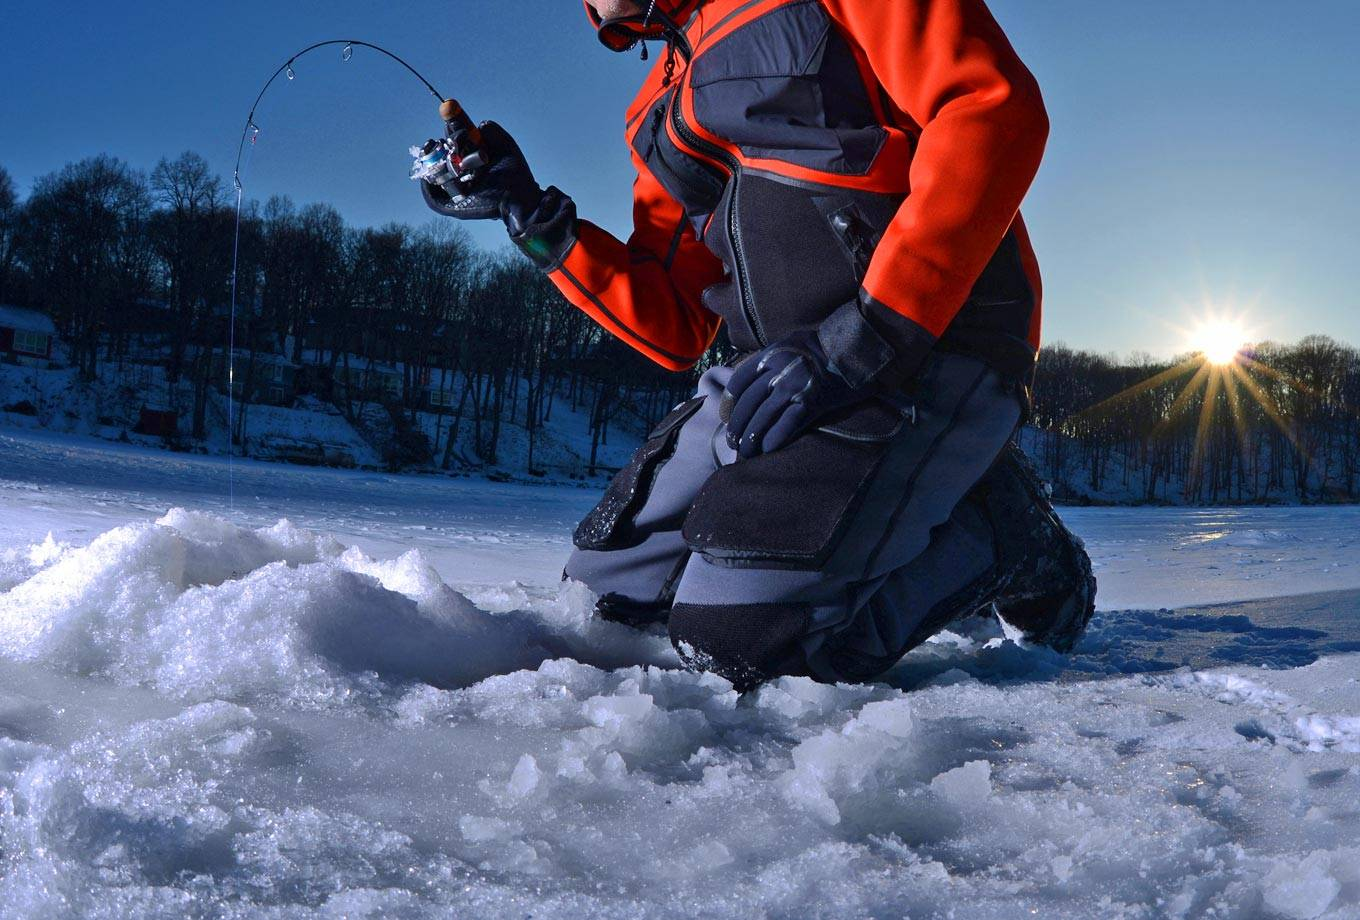 Yellowstone National Park ice fishing